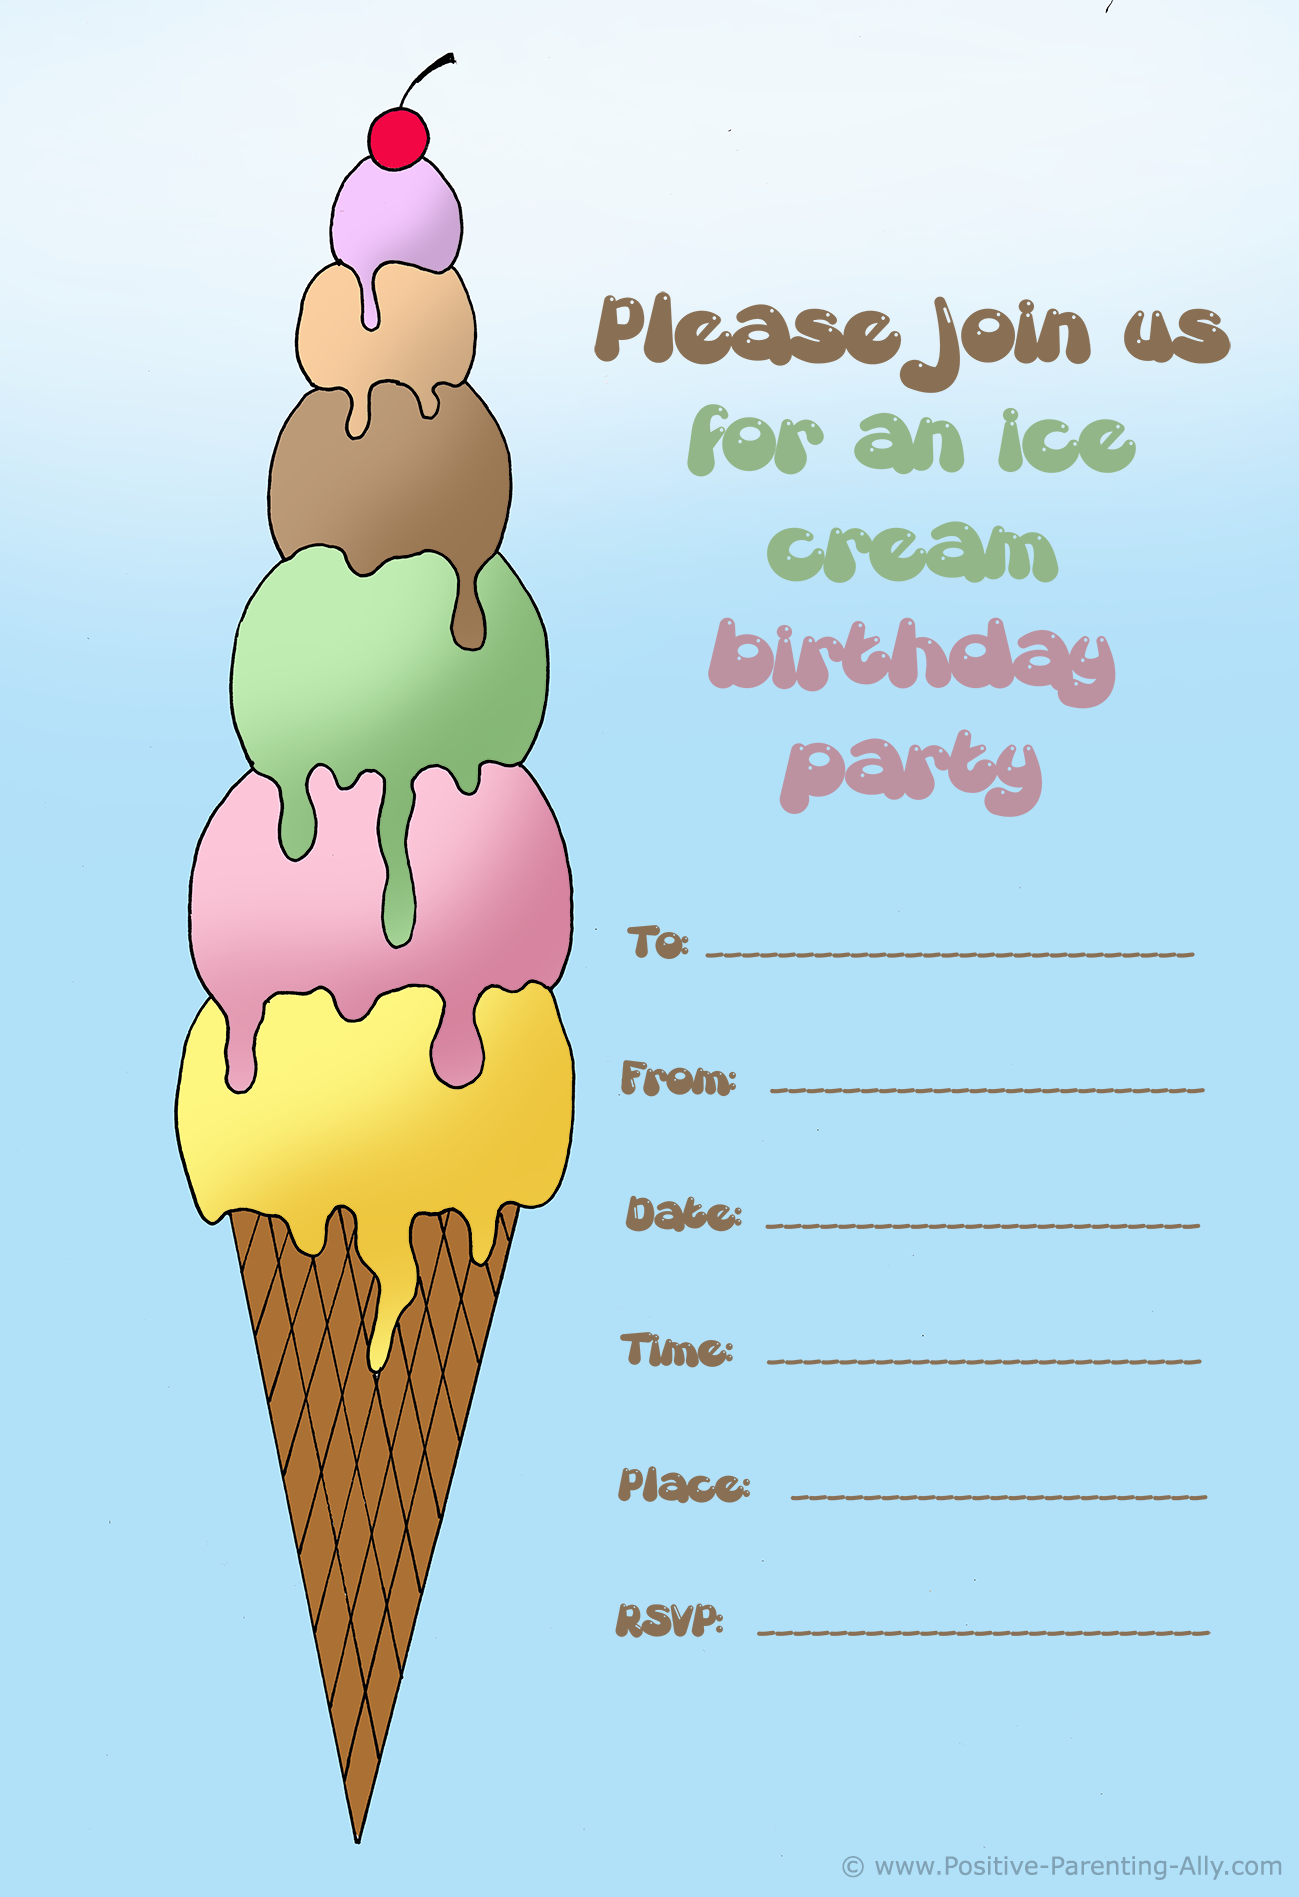 Stupendous image within ice cream party invitations printable free